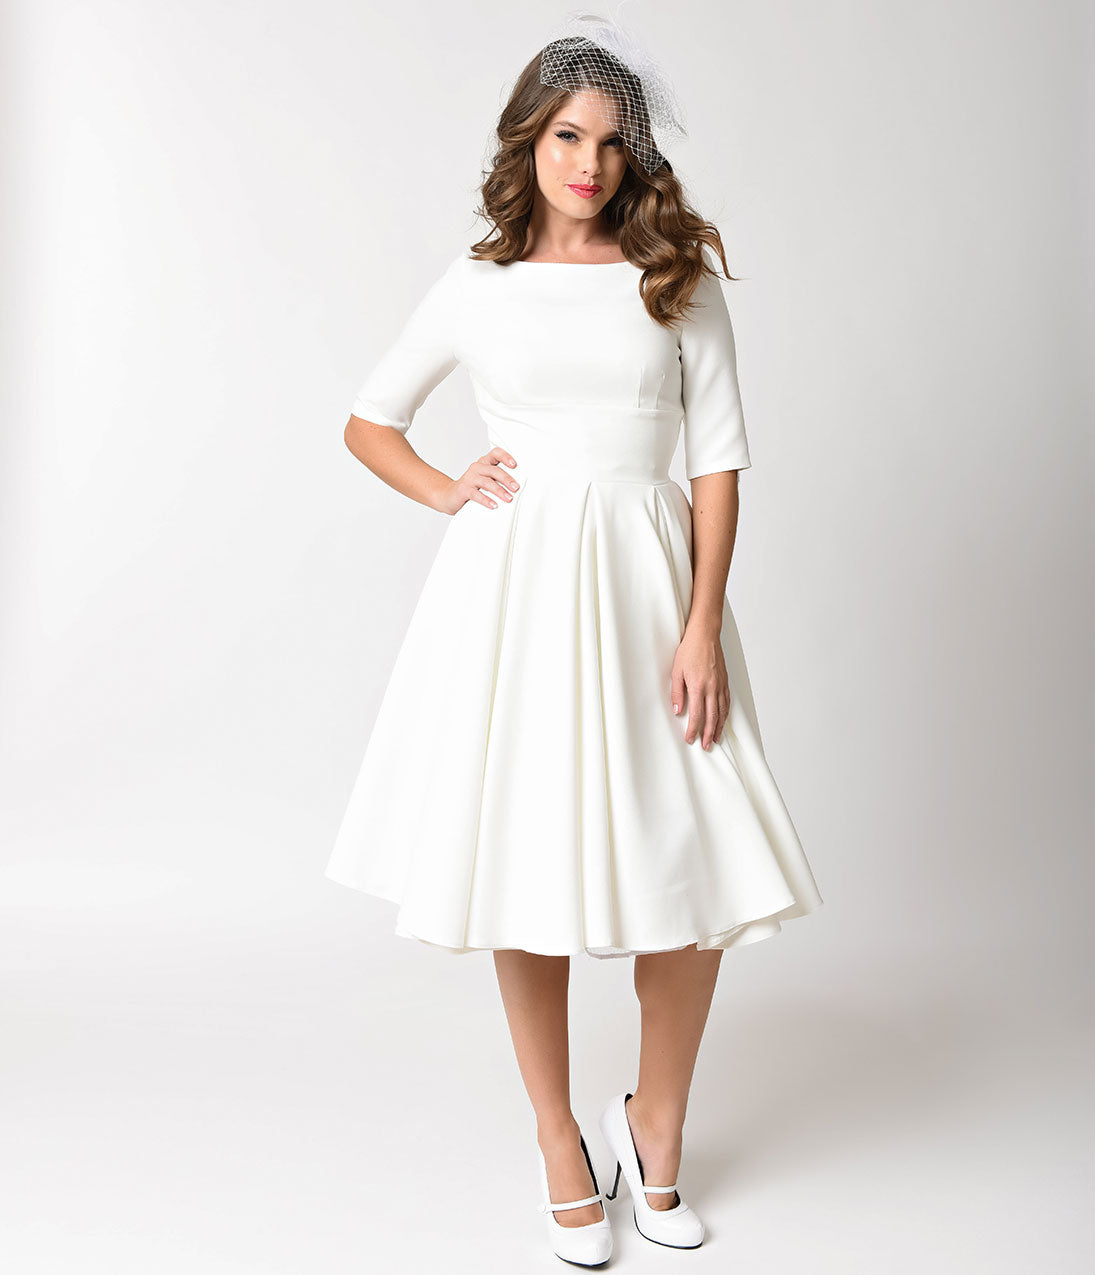 50s Wedding Dress, 1950s Style Wedding Dresses, Rockabilly Weddings The Pretty Dress Company Ivory Crepe Sleeved Hepburn Swing Dress $172.00 AT vintagedancer.com